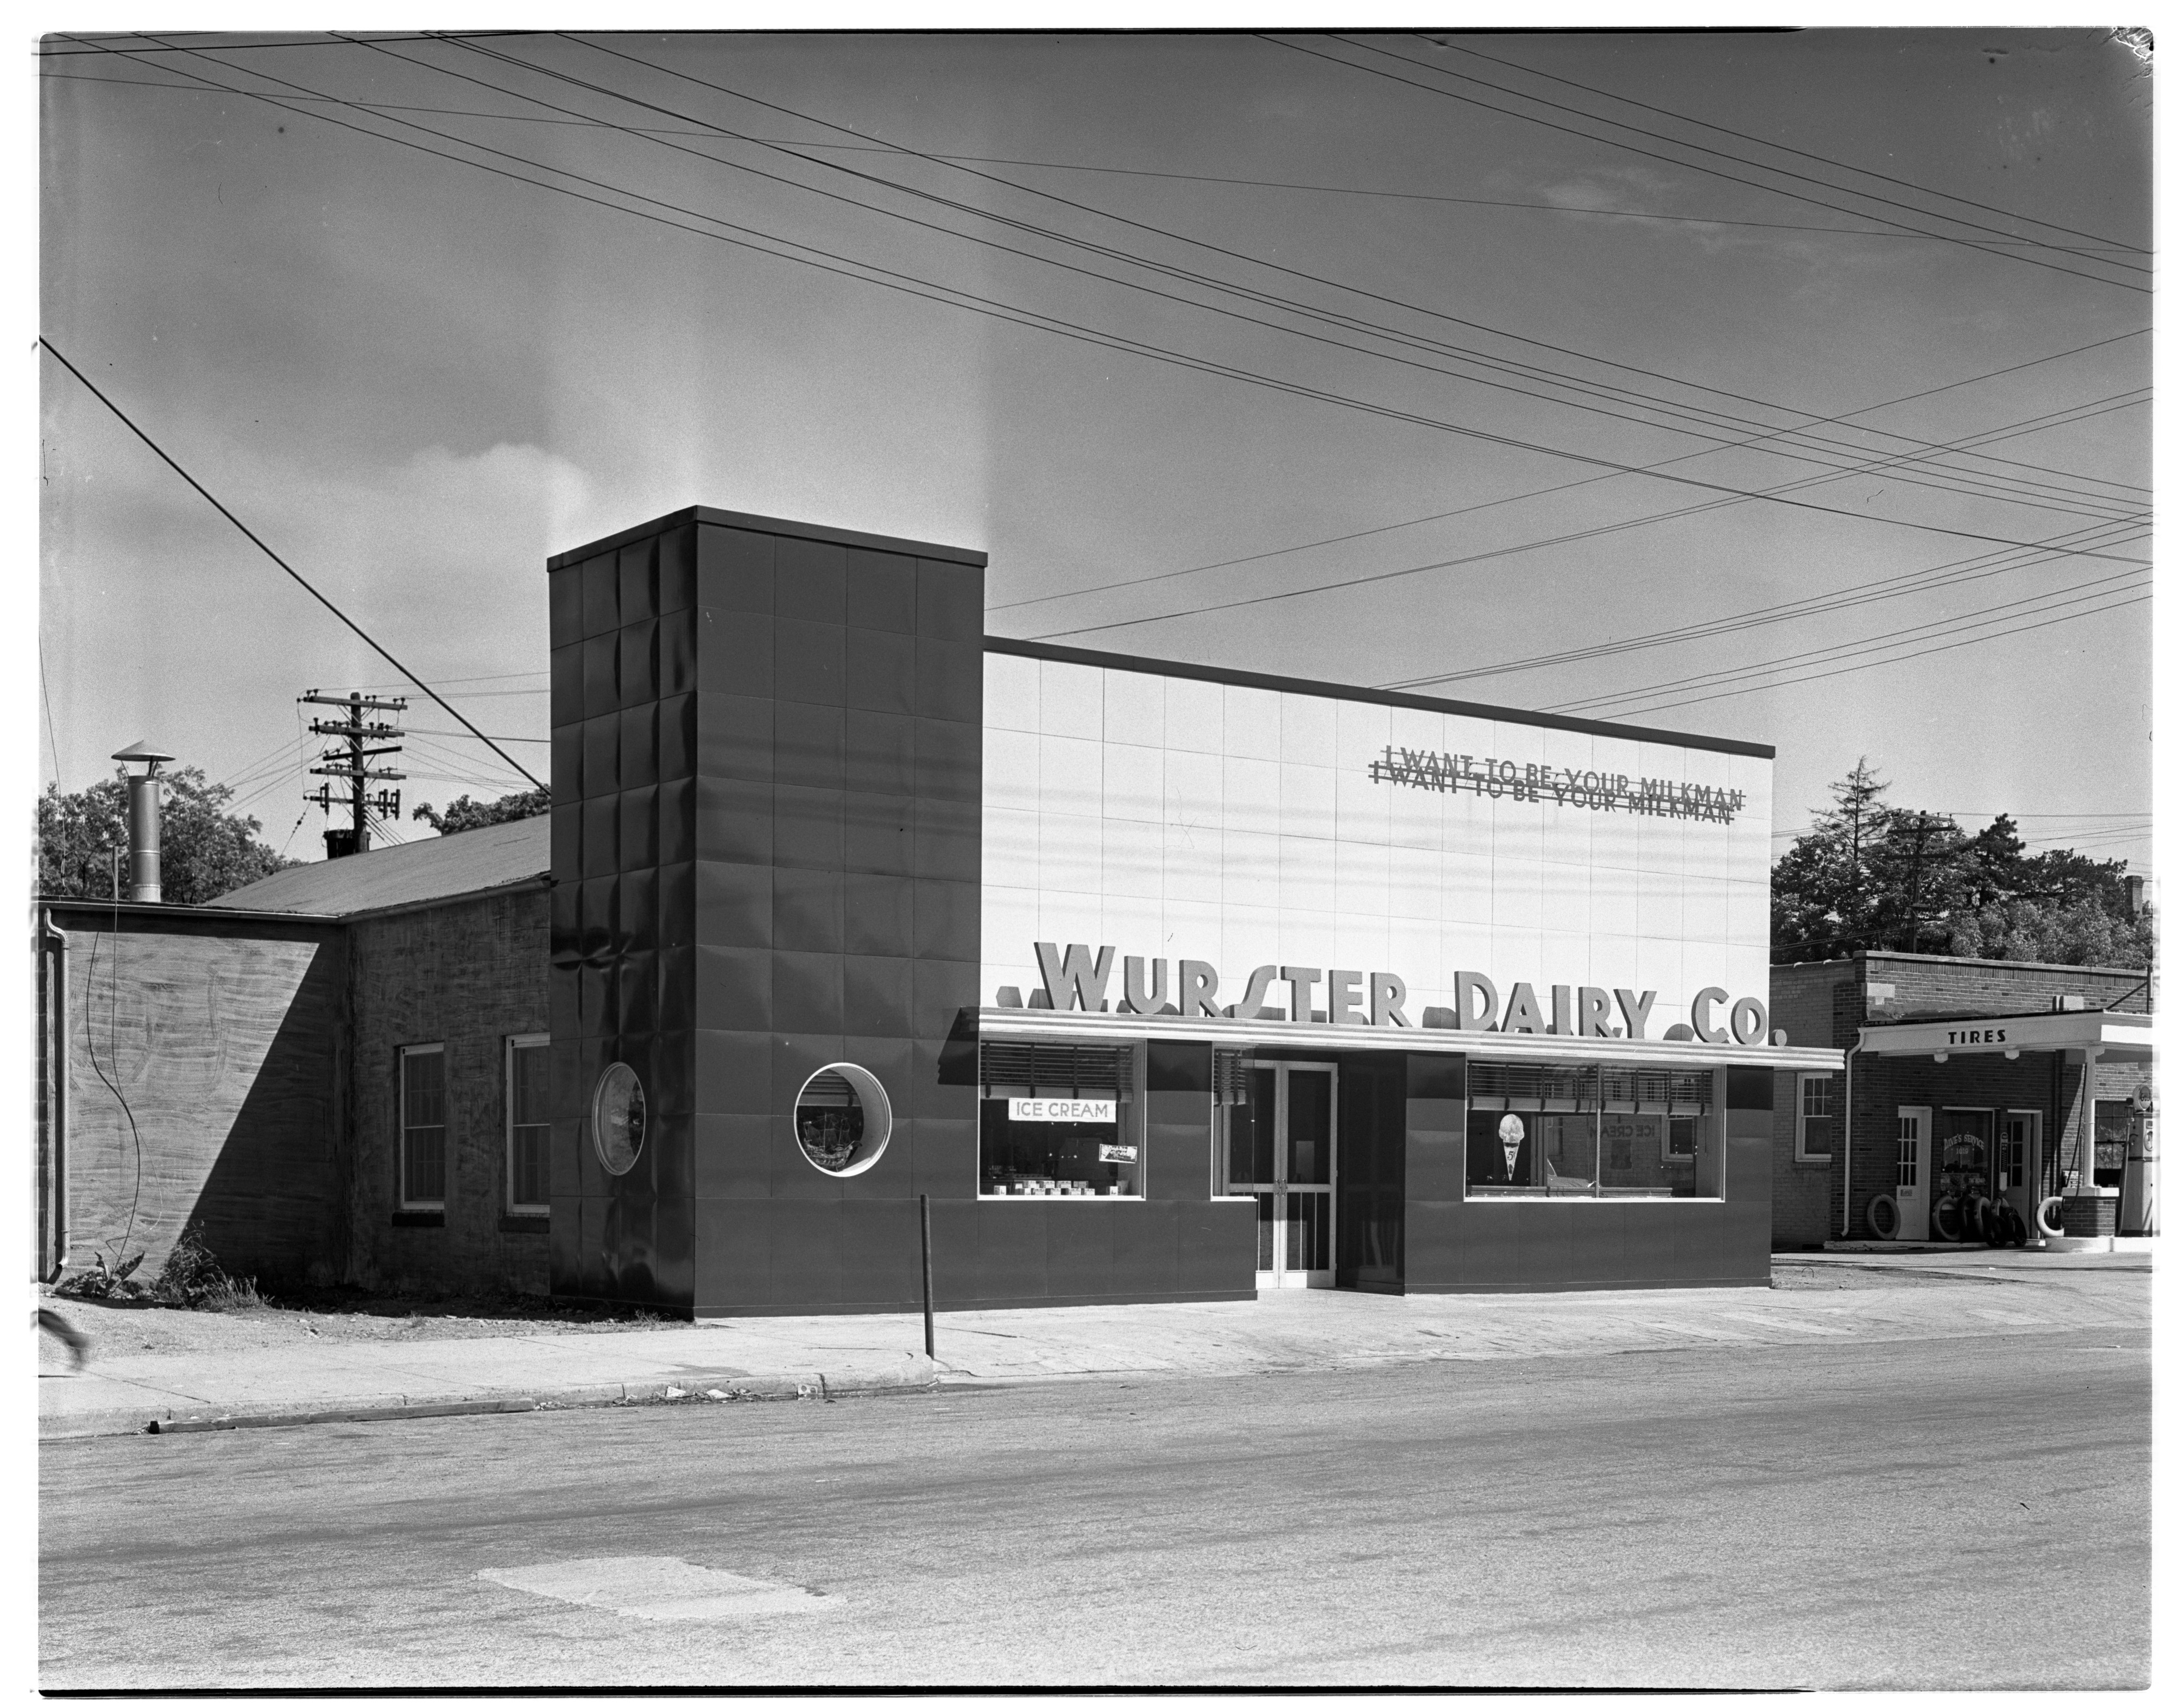 Wurster Dairy's New Building on Broadway, 1937 image